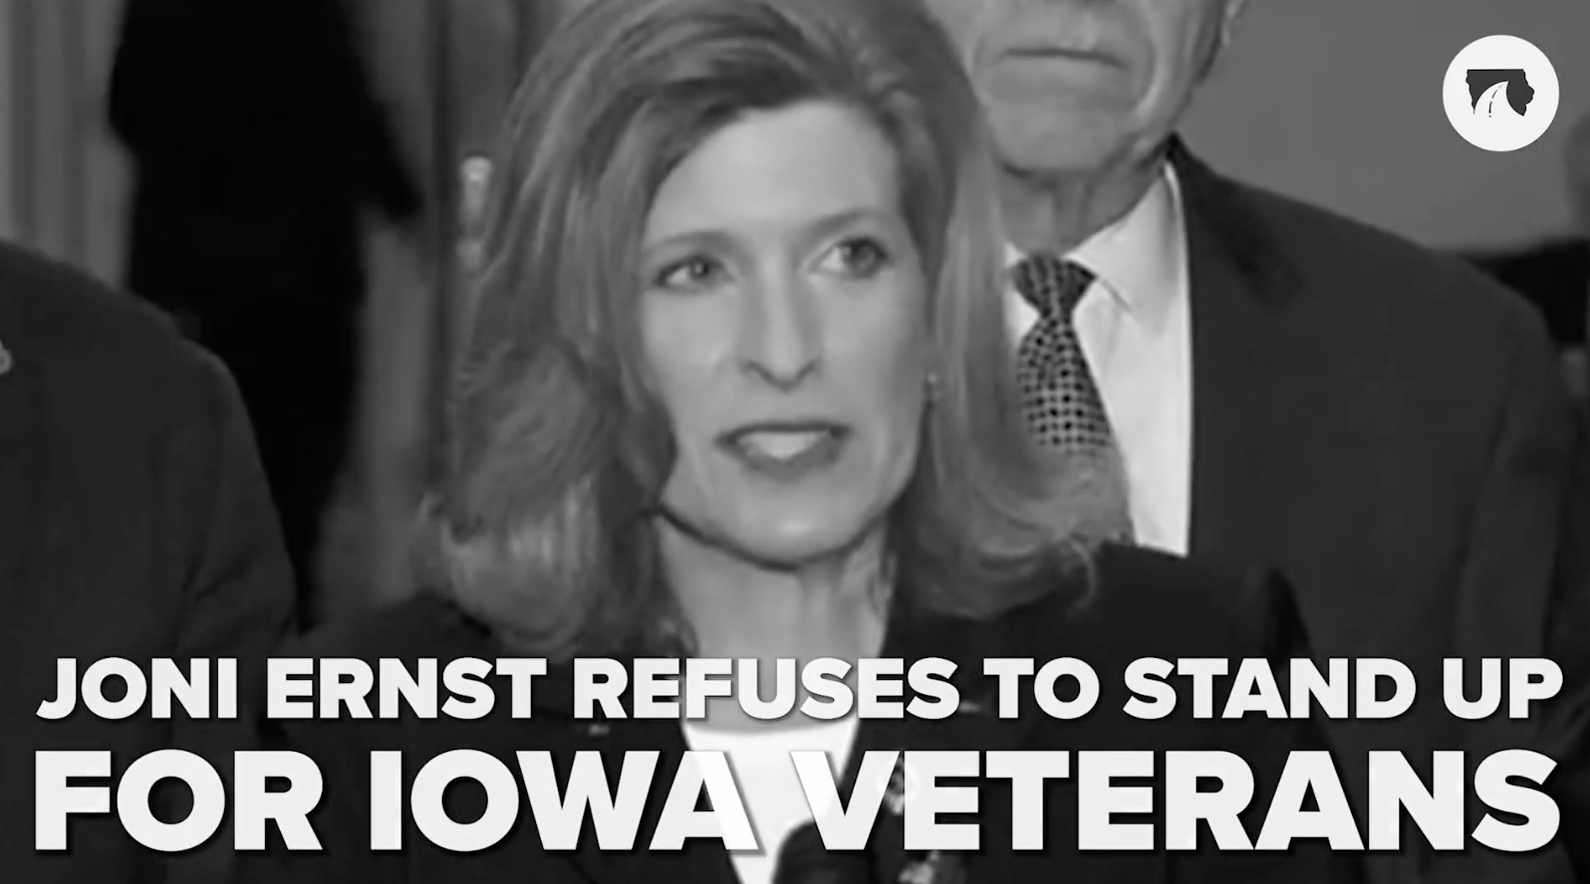 Joni Ernst Video - She Refuses To Stand For Iowa Veterans